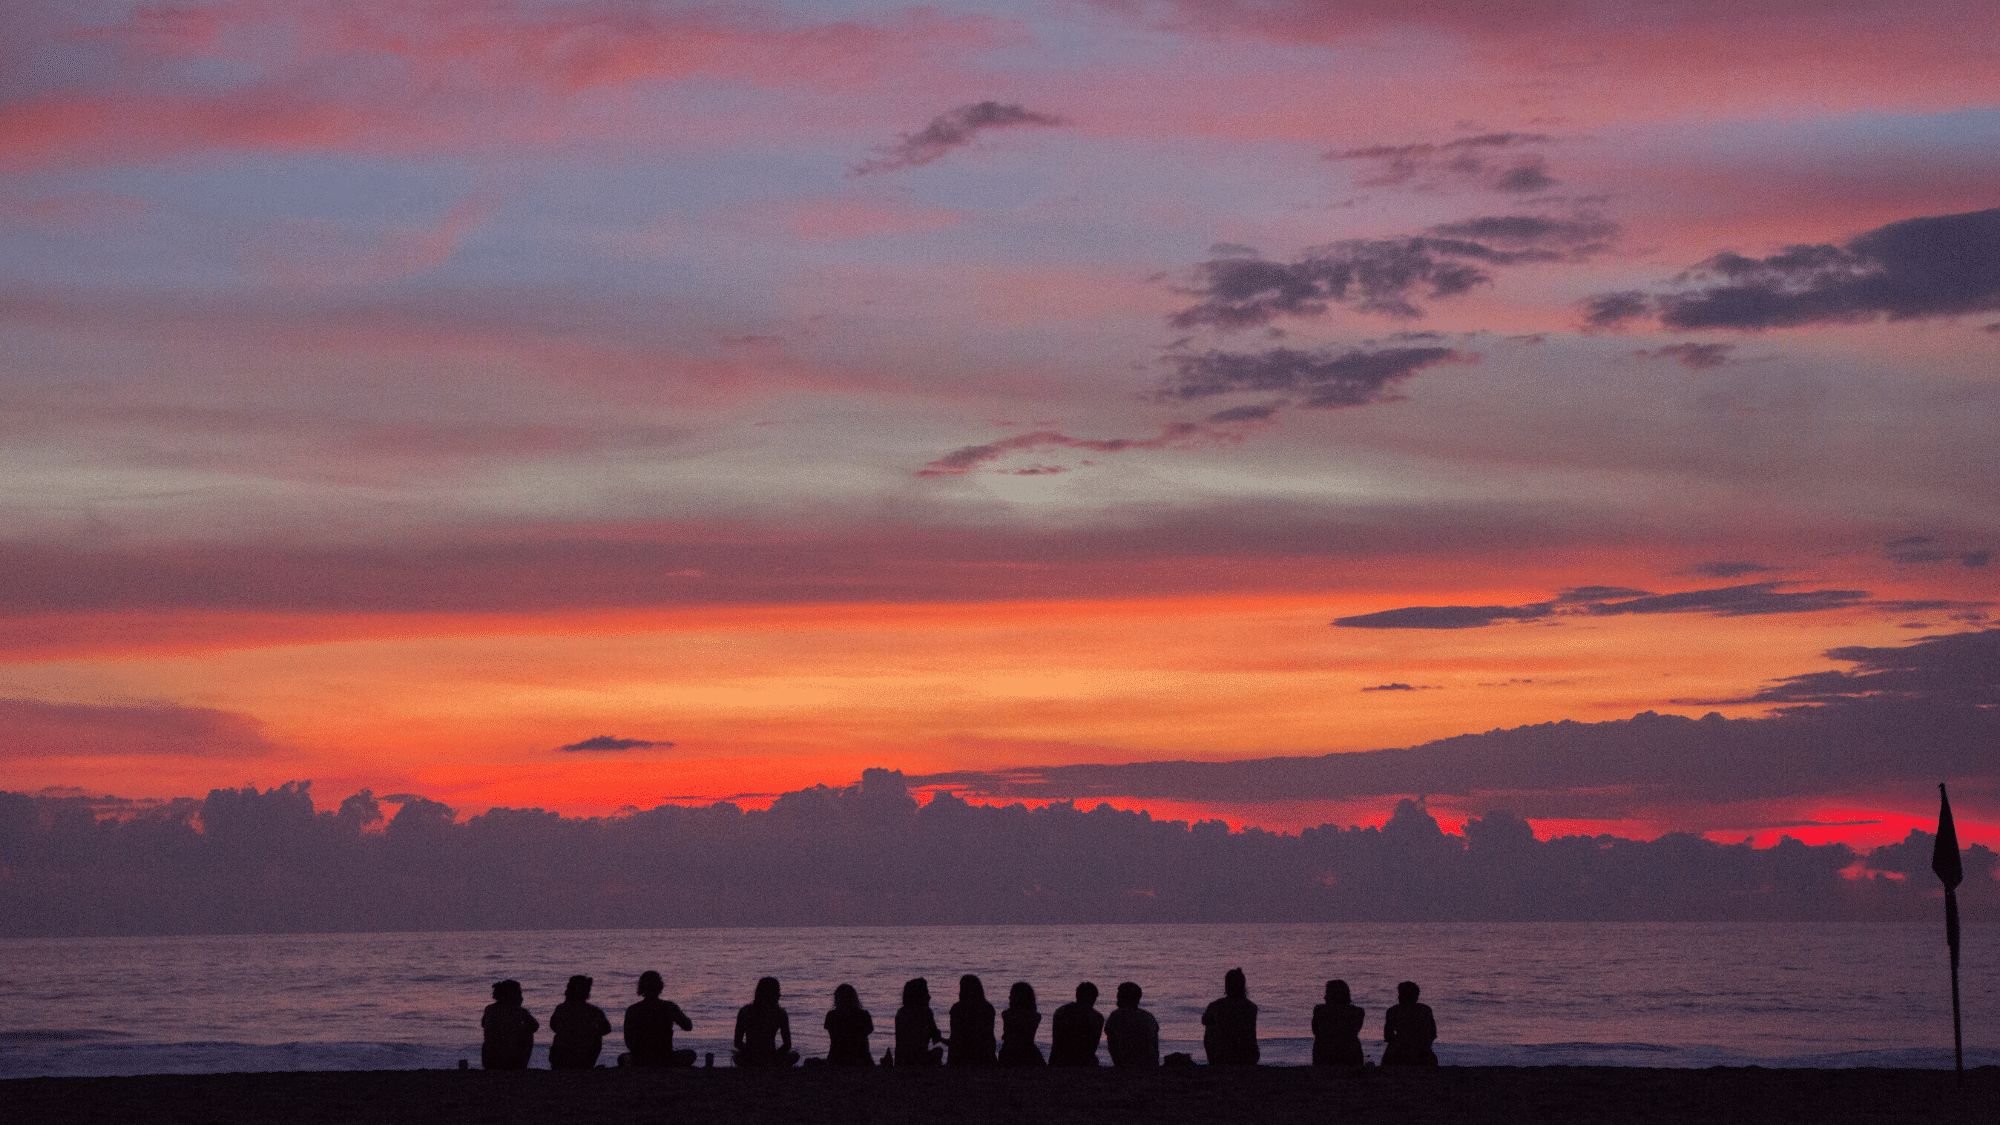 Group of people on the beach watching the sunset